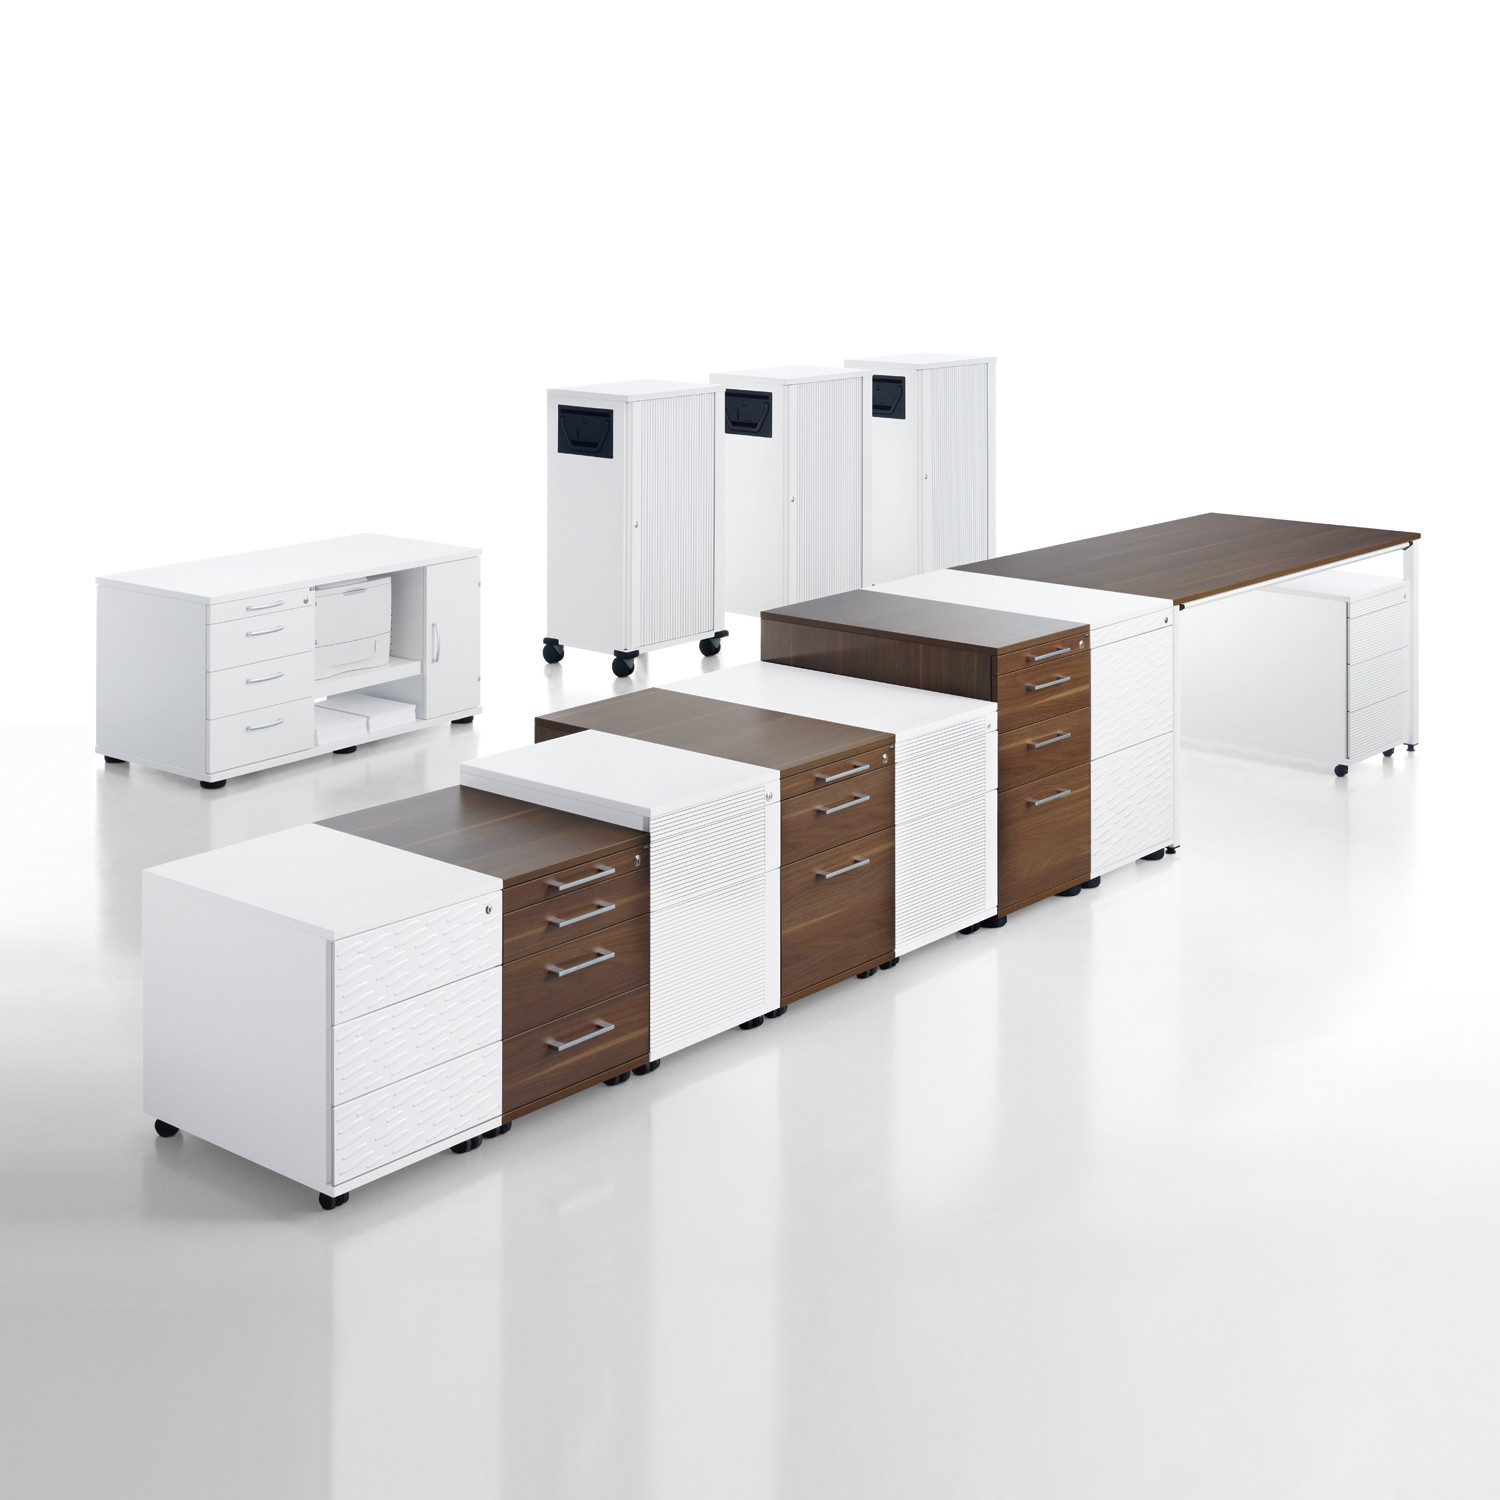 Sedus Pedestals Range is available in various finishes